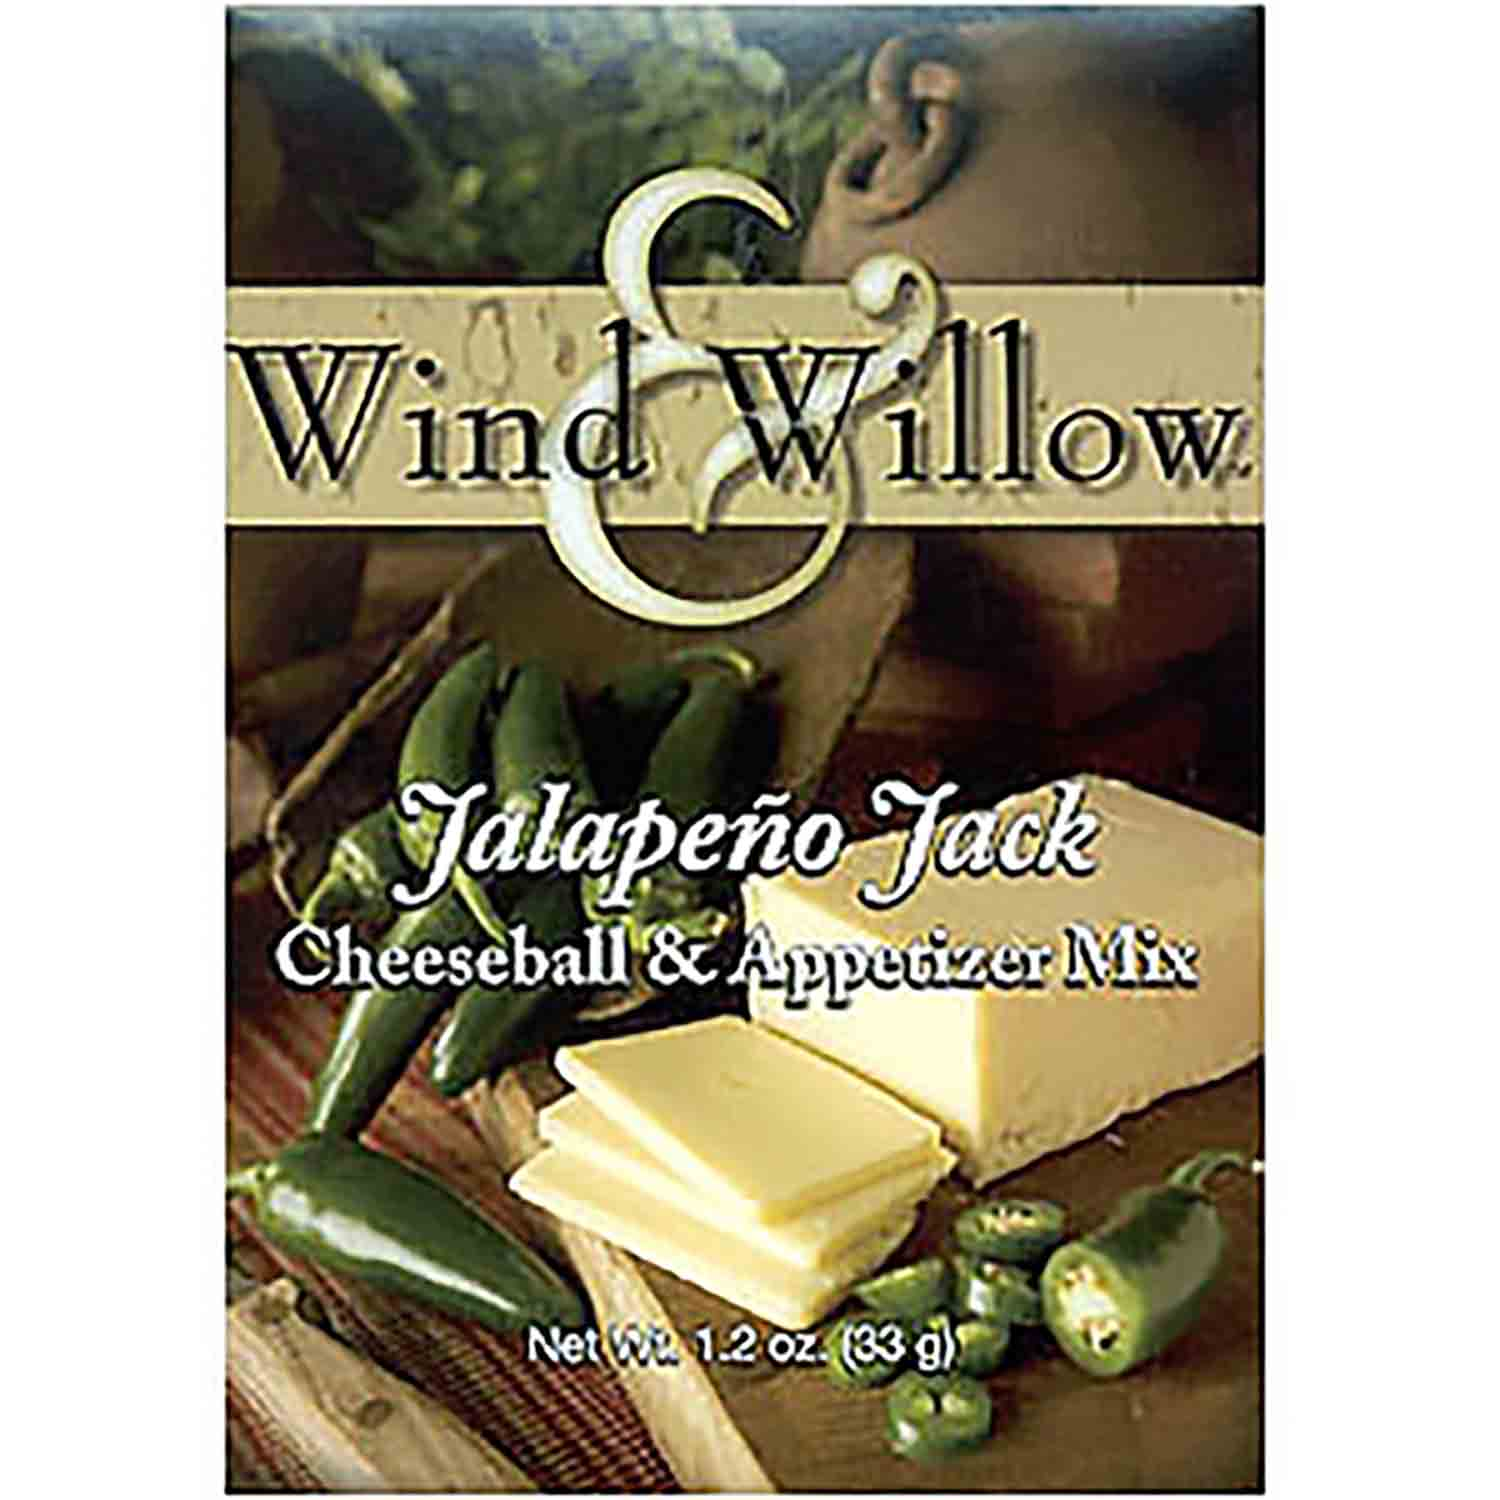 Jalapeno Jack Wind & Willow Cheeseball Mix